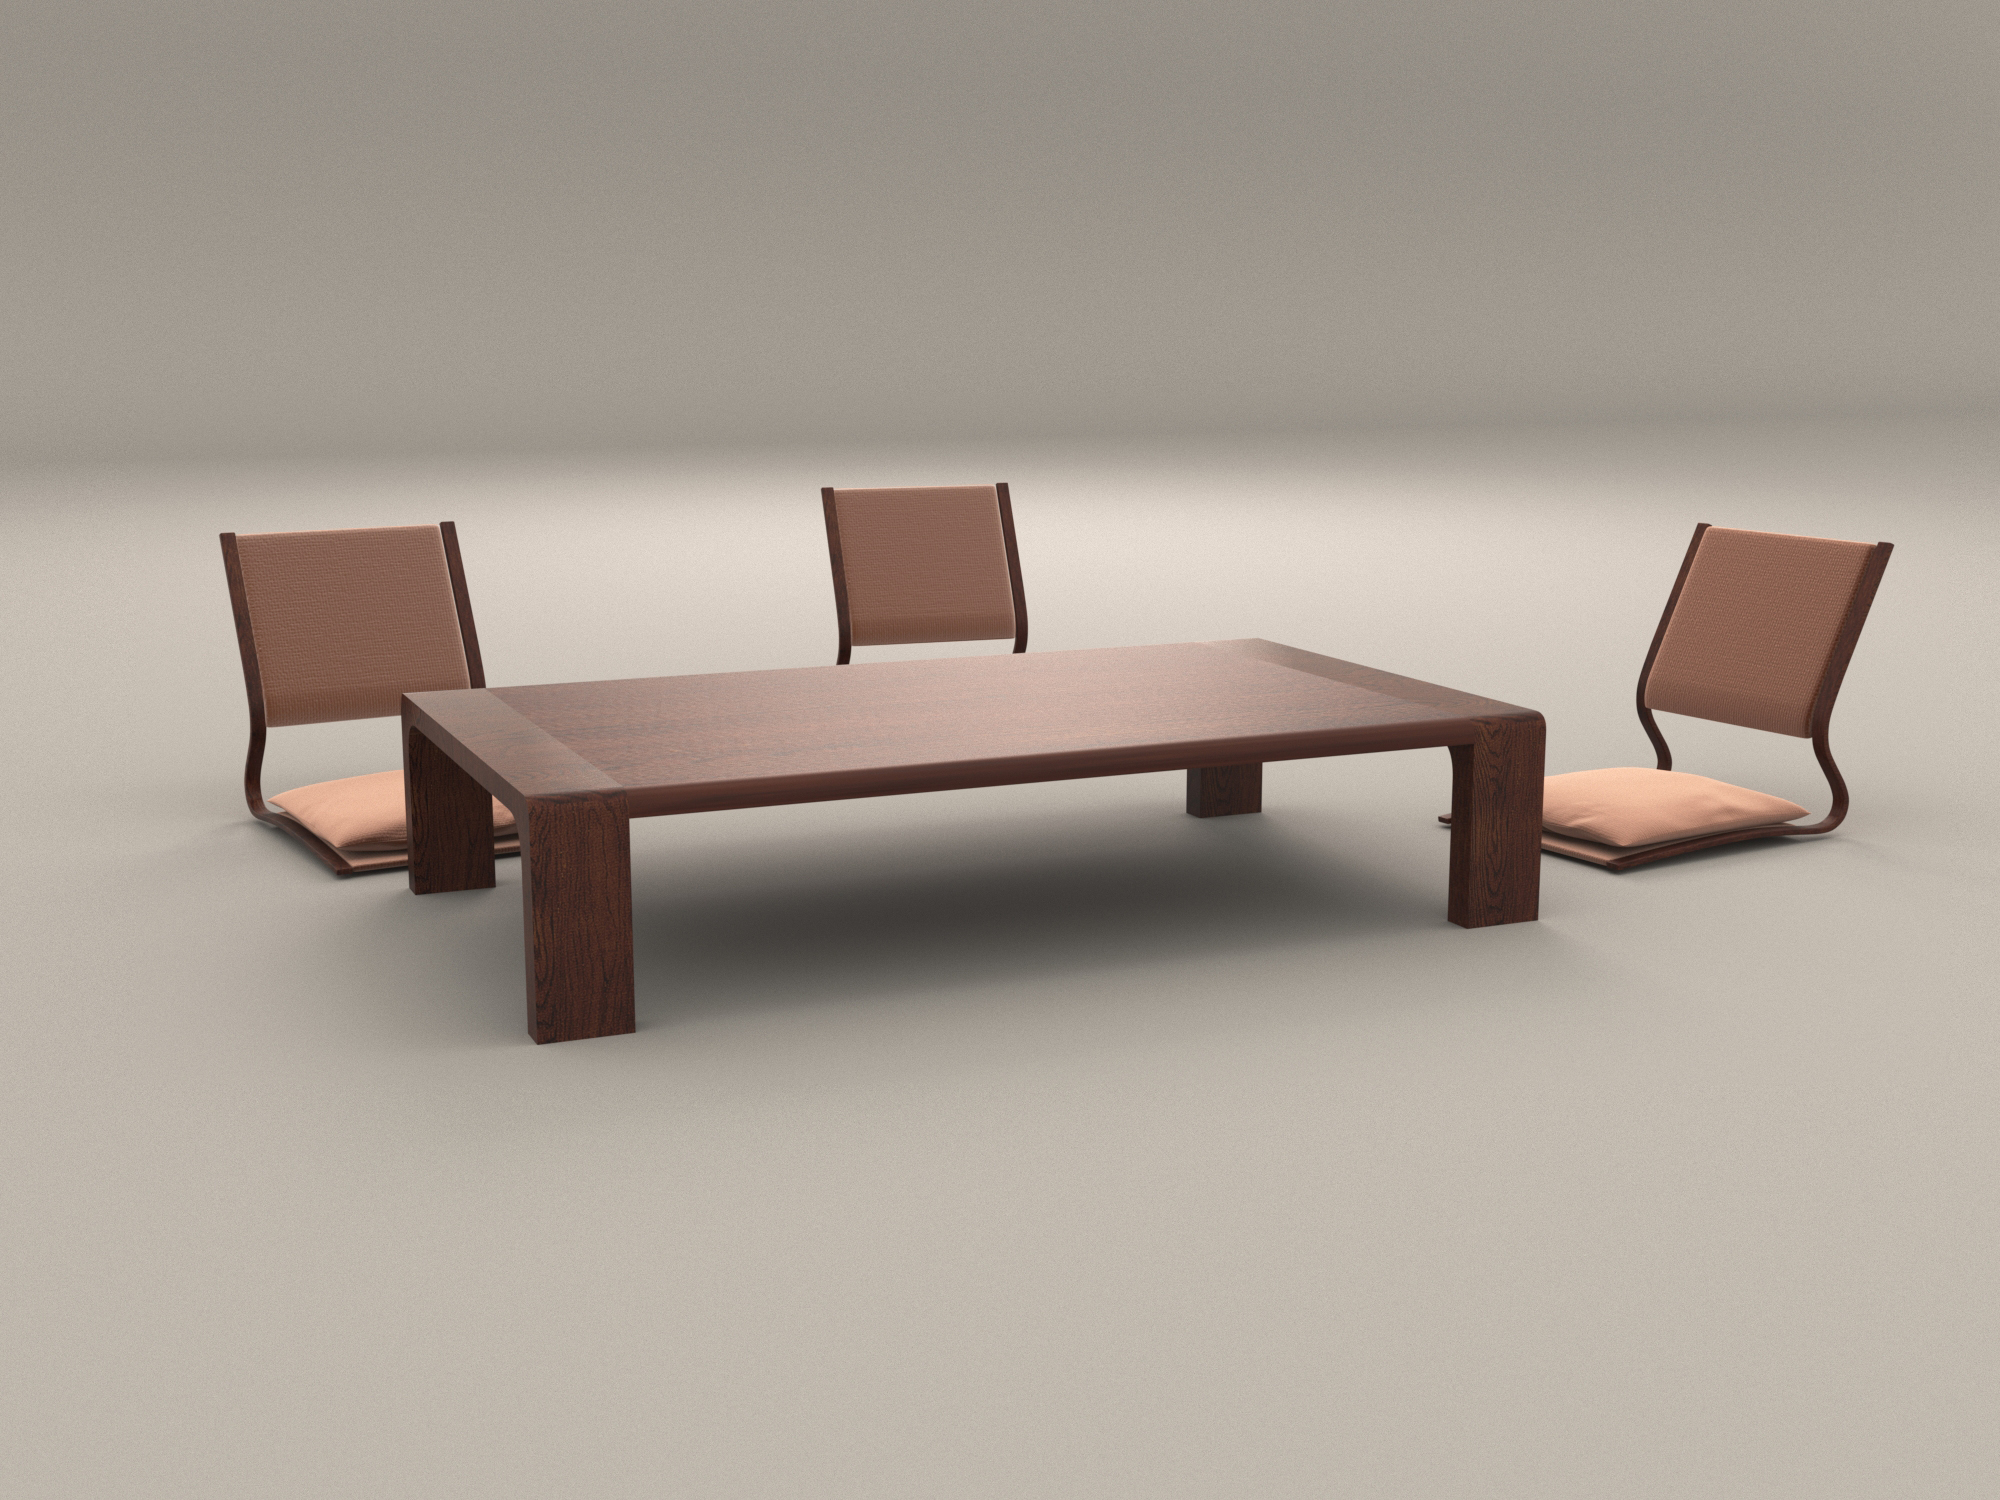 Japanese Style Low Dining Table and Chair by Artemishe